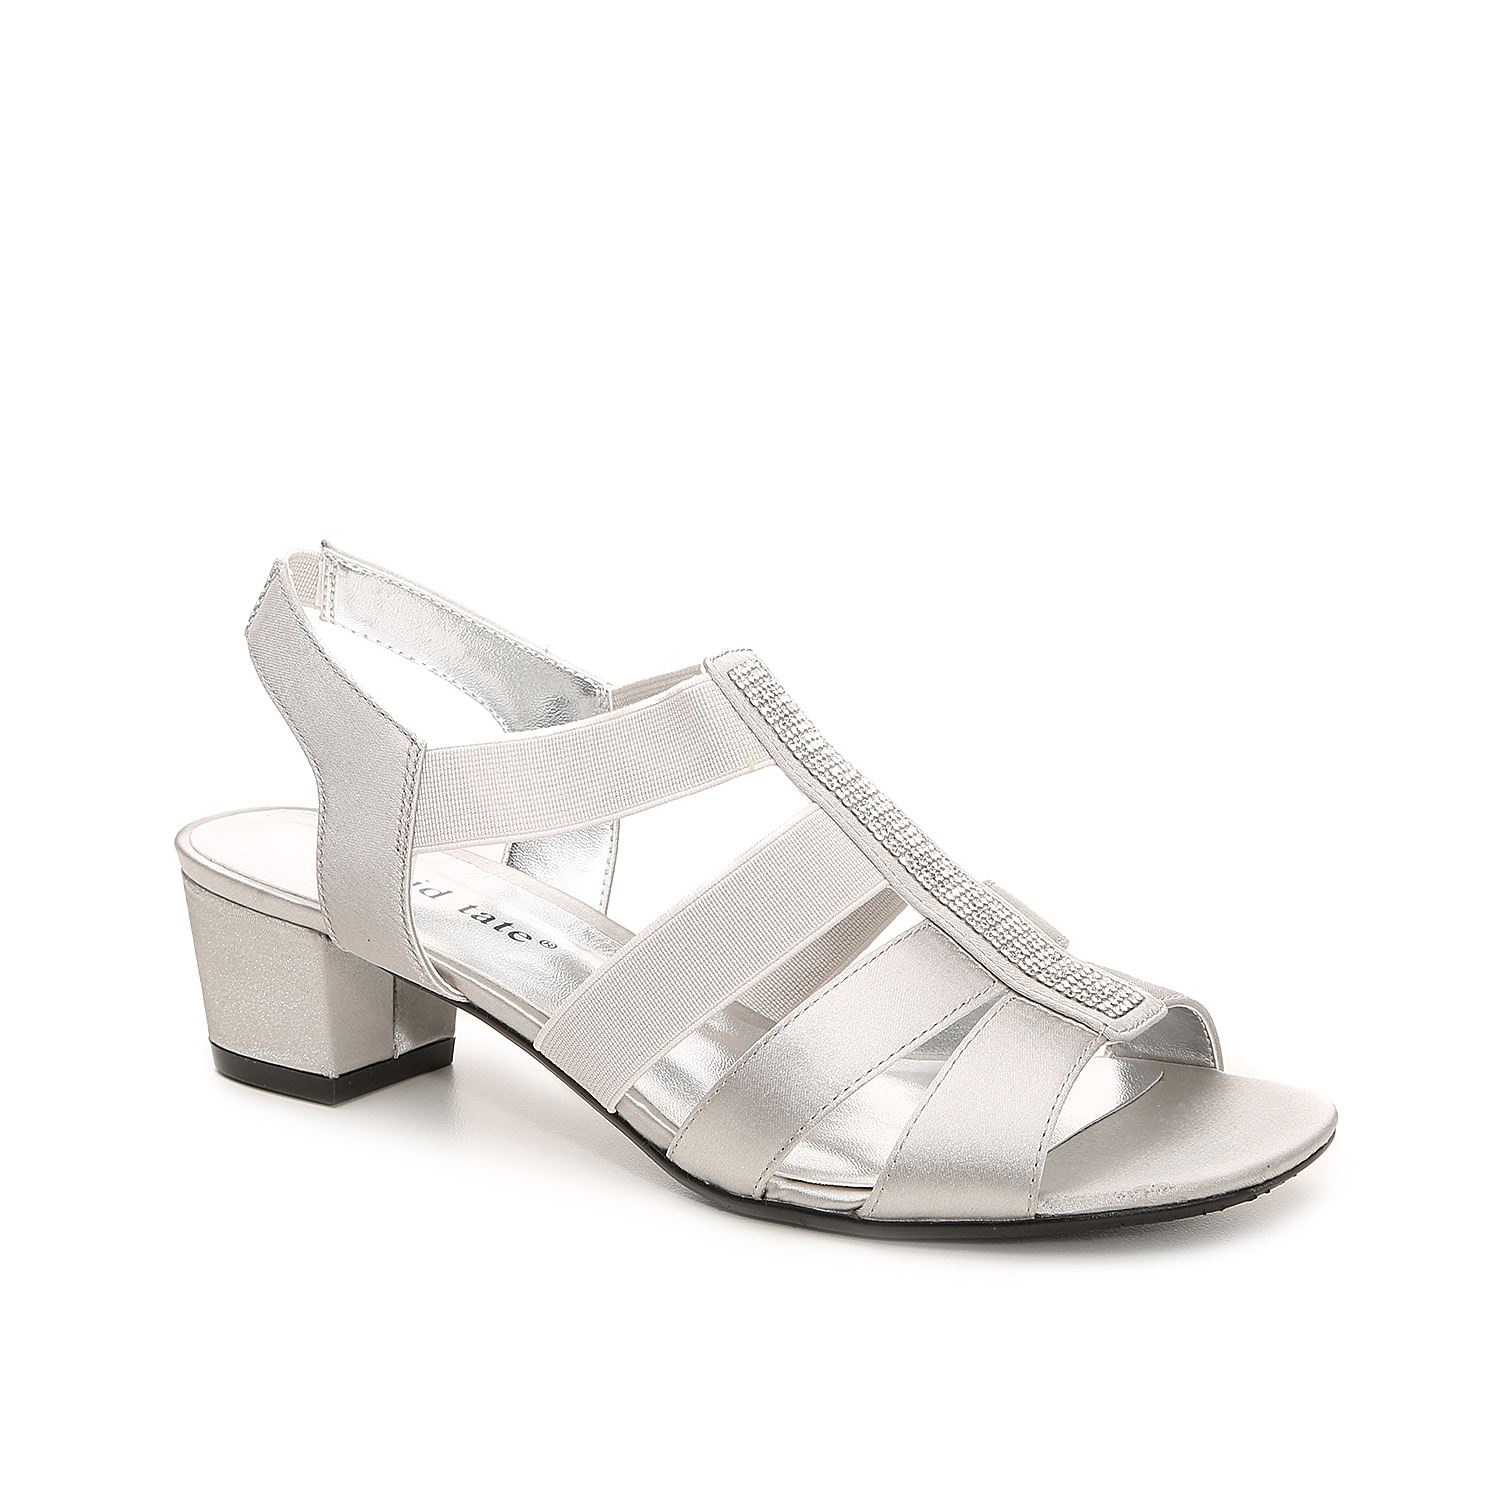 With soft satin and rhinestone embellishments, the Event block heel sandal from David Tate will pair easily with your evening attire.